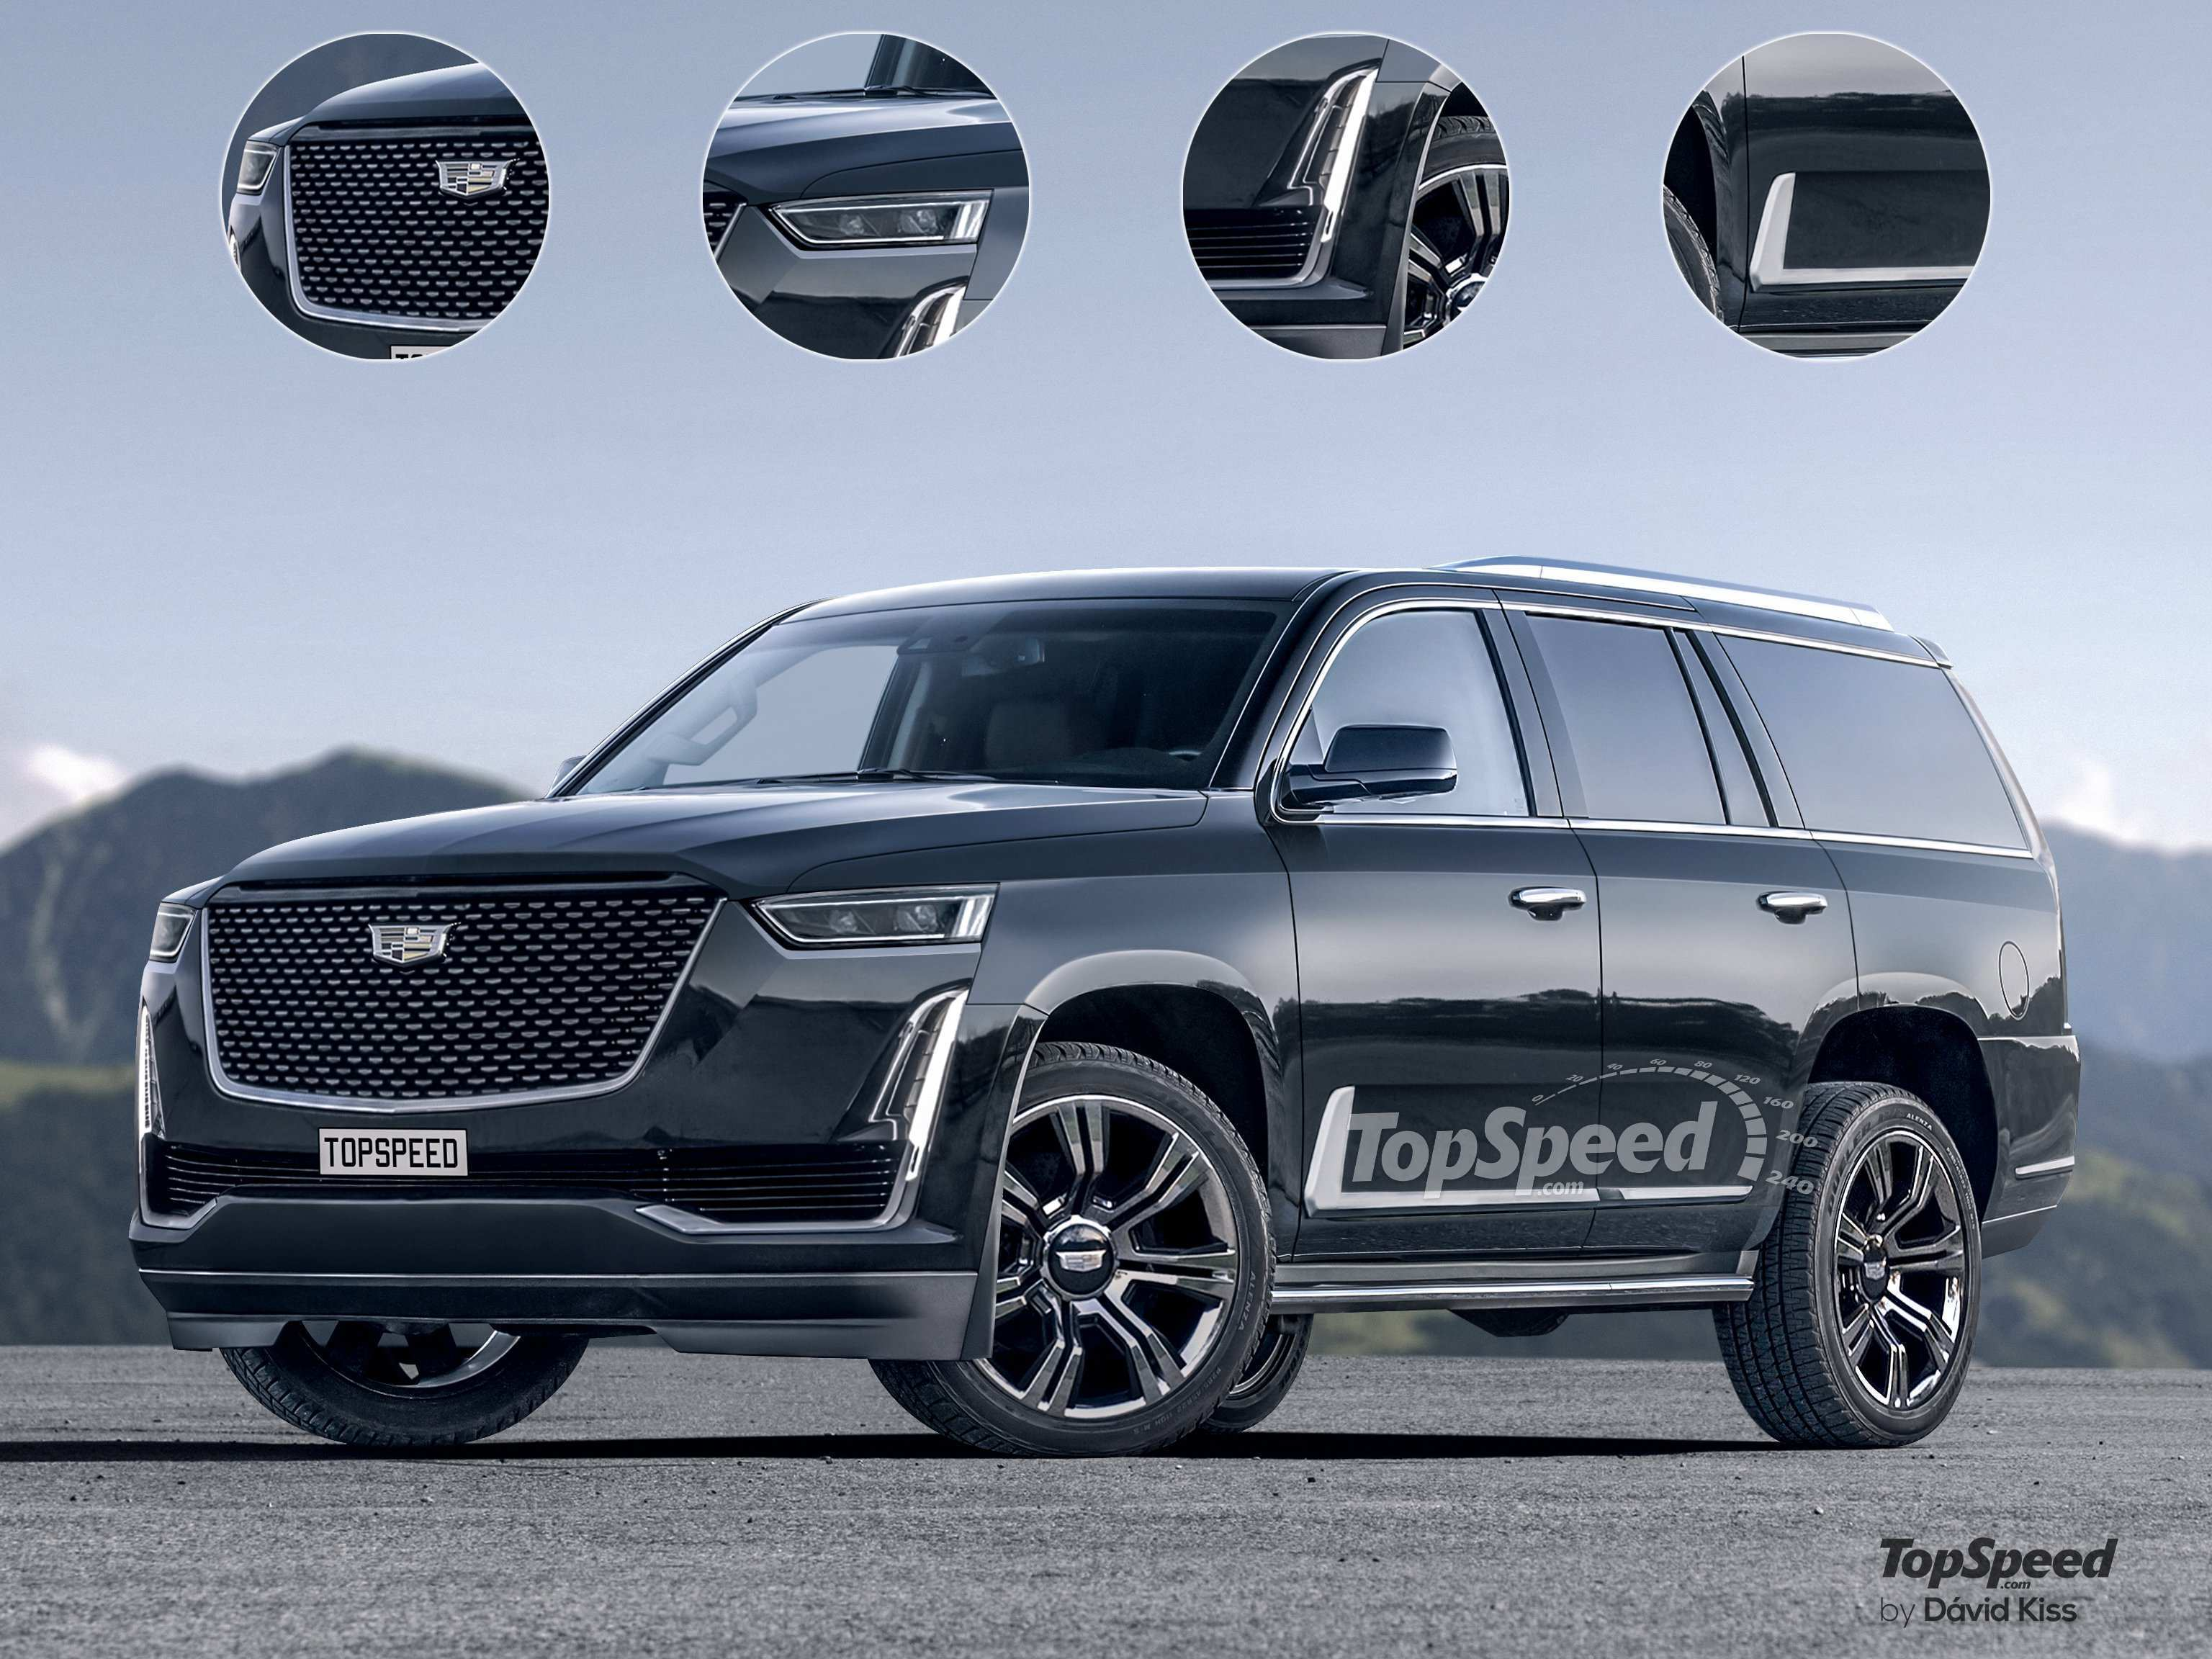 49 The Best 2020 Cadillac Escalade Ext Redesign And Concept